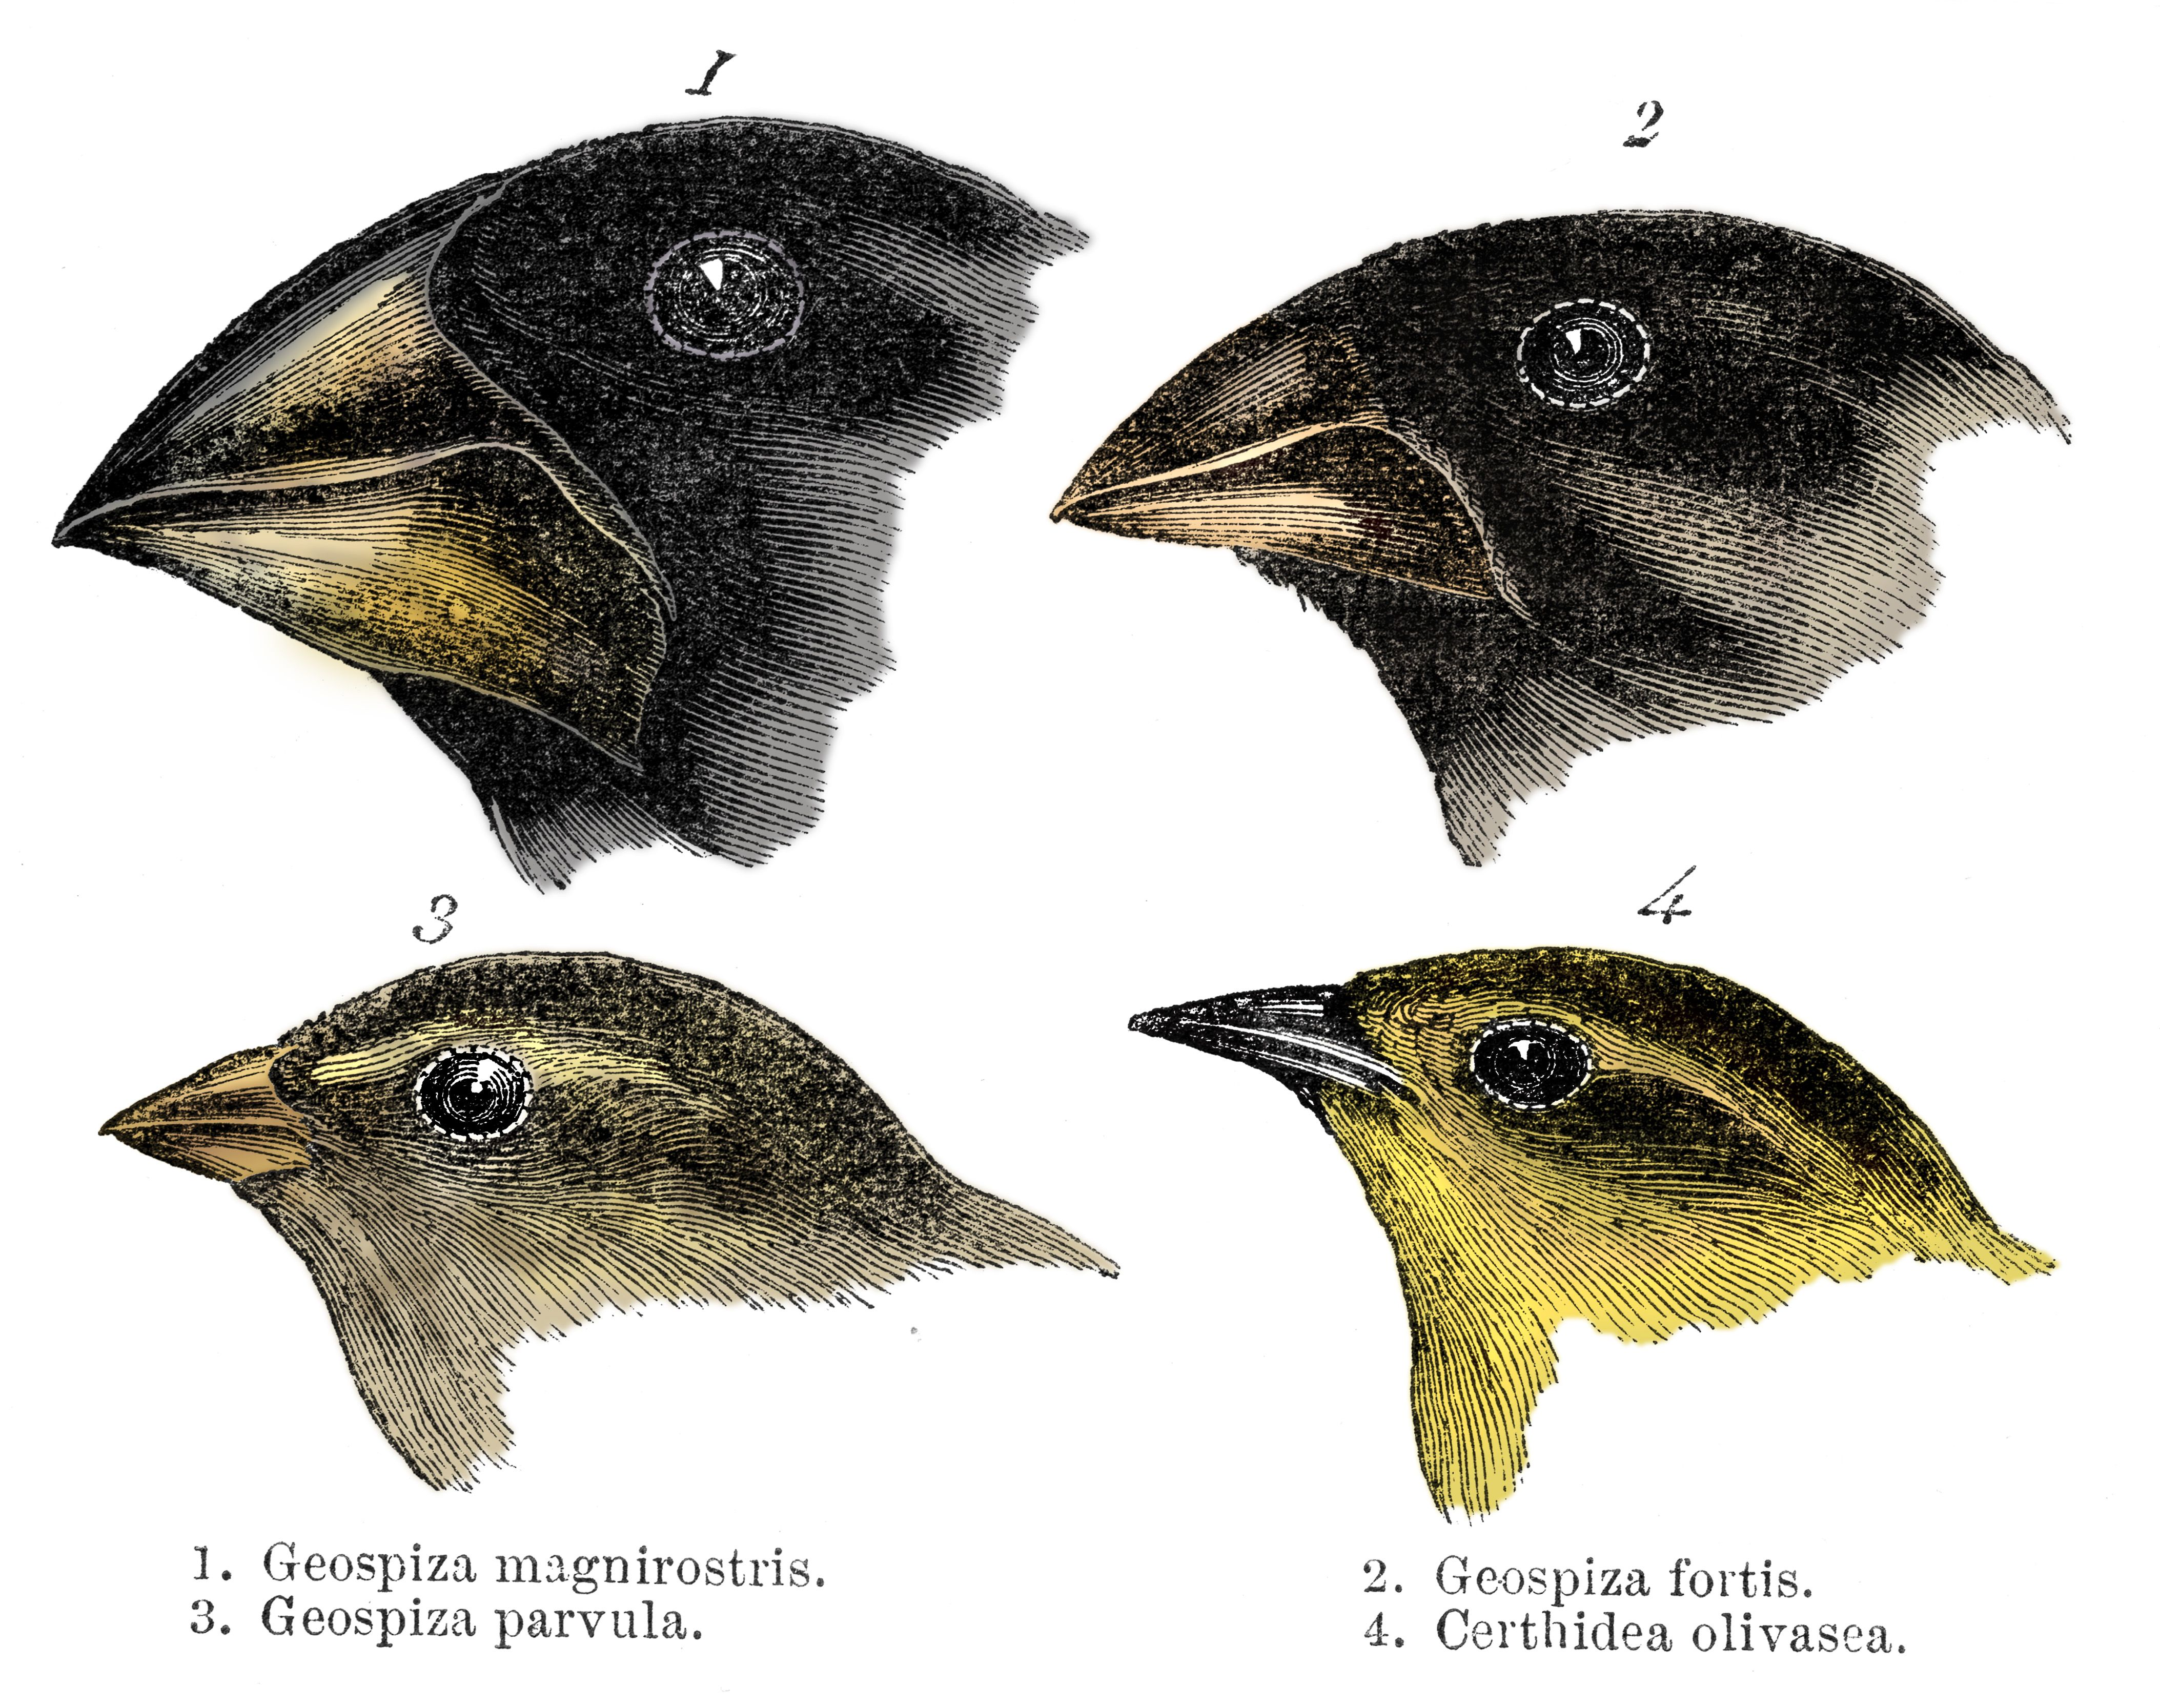 A Scientist Just Proved One of Darwin's Evolution Theories, 161 Years Later